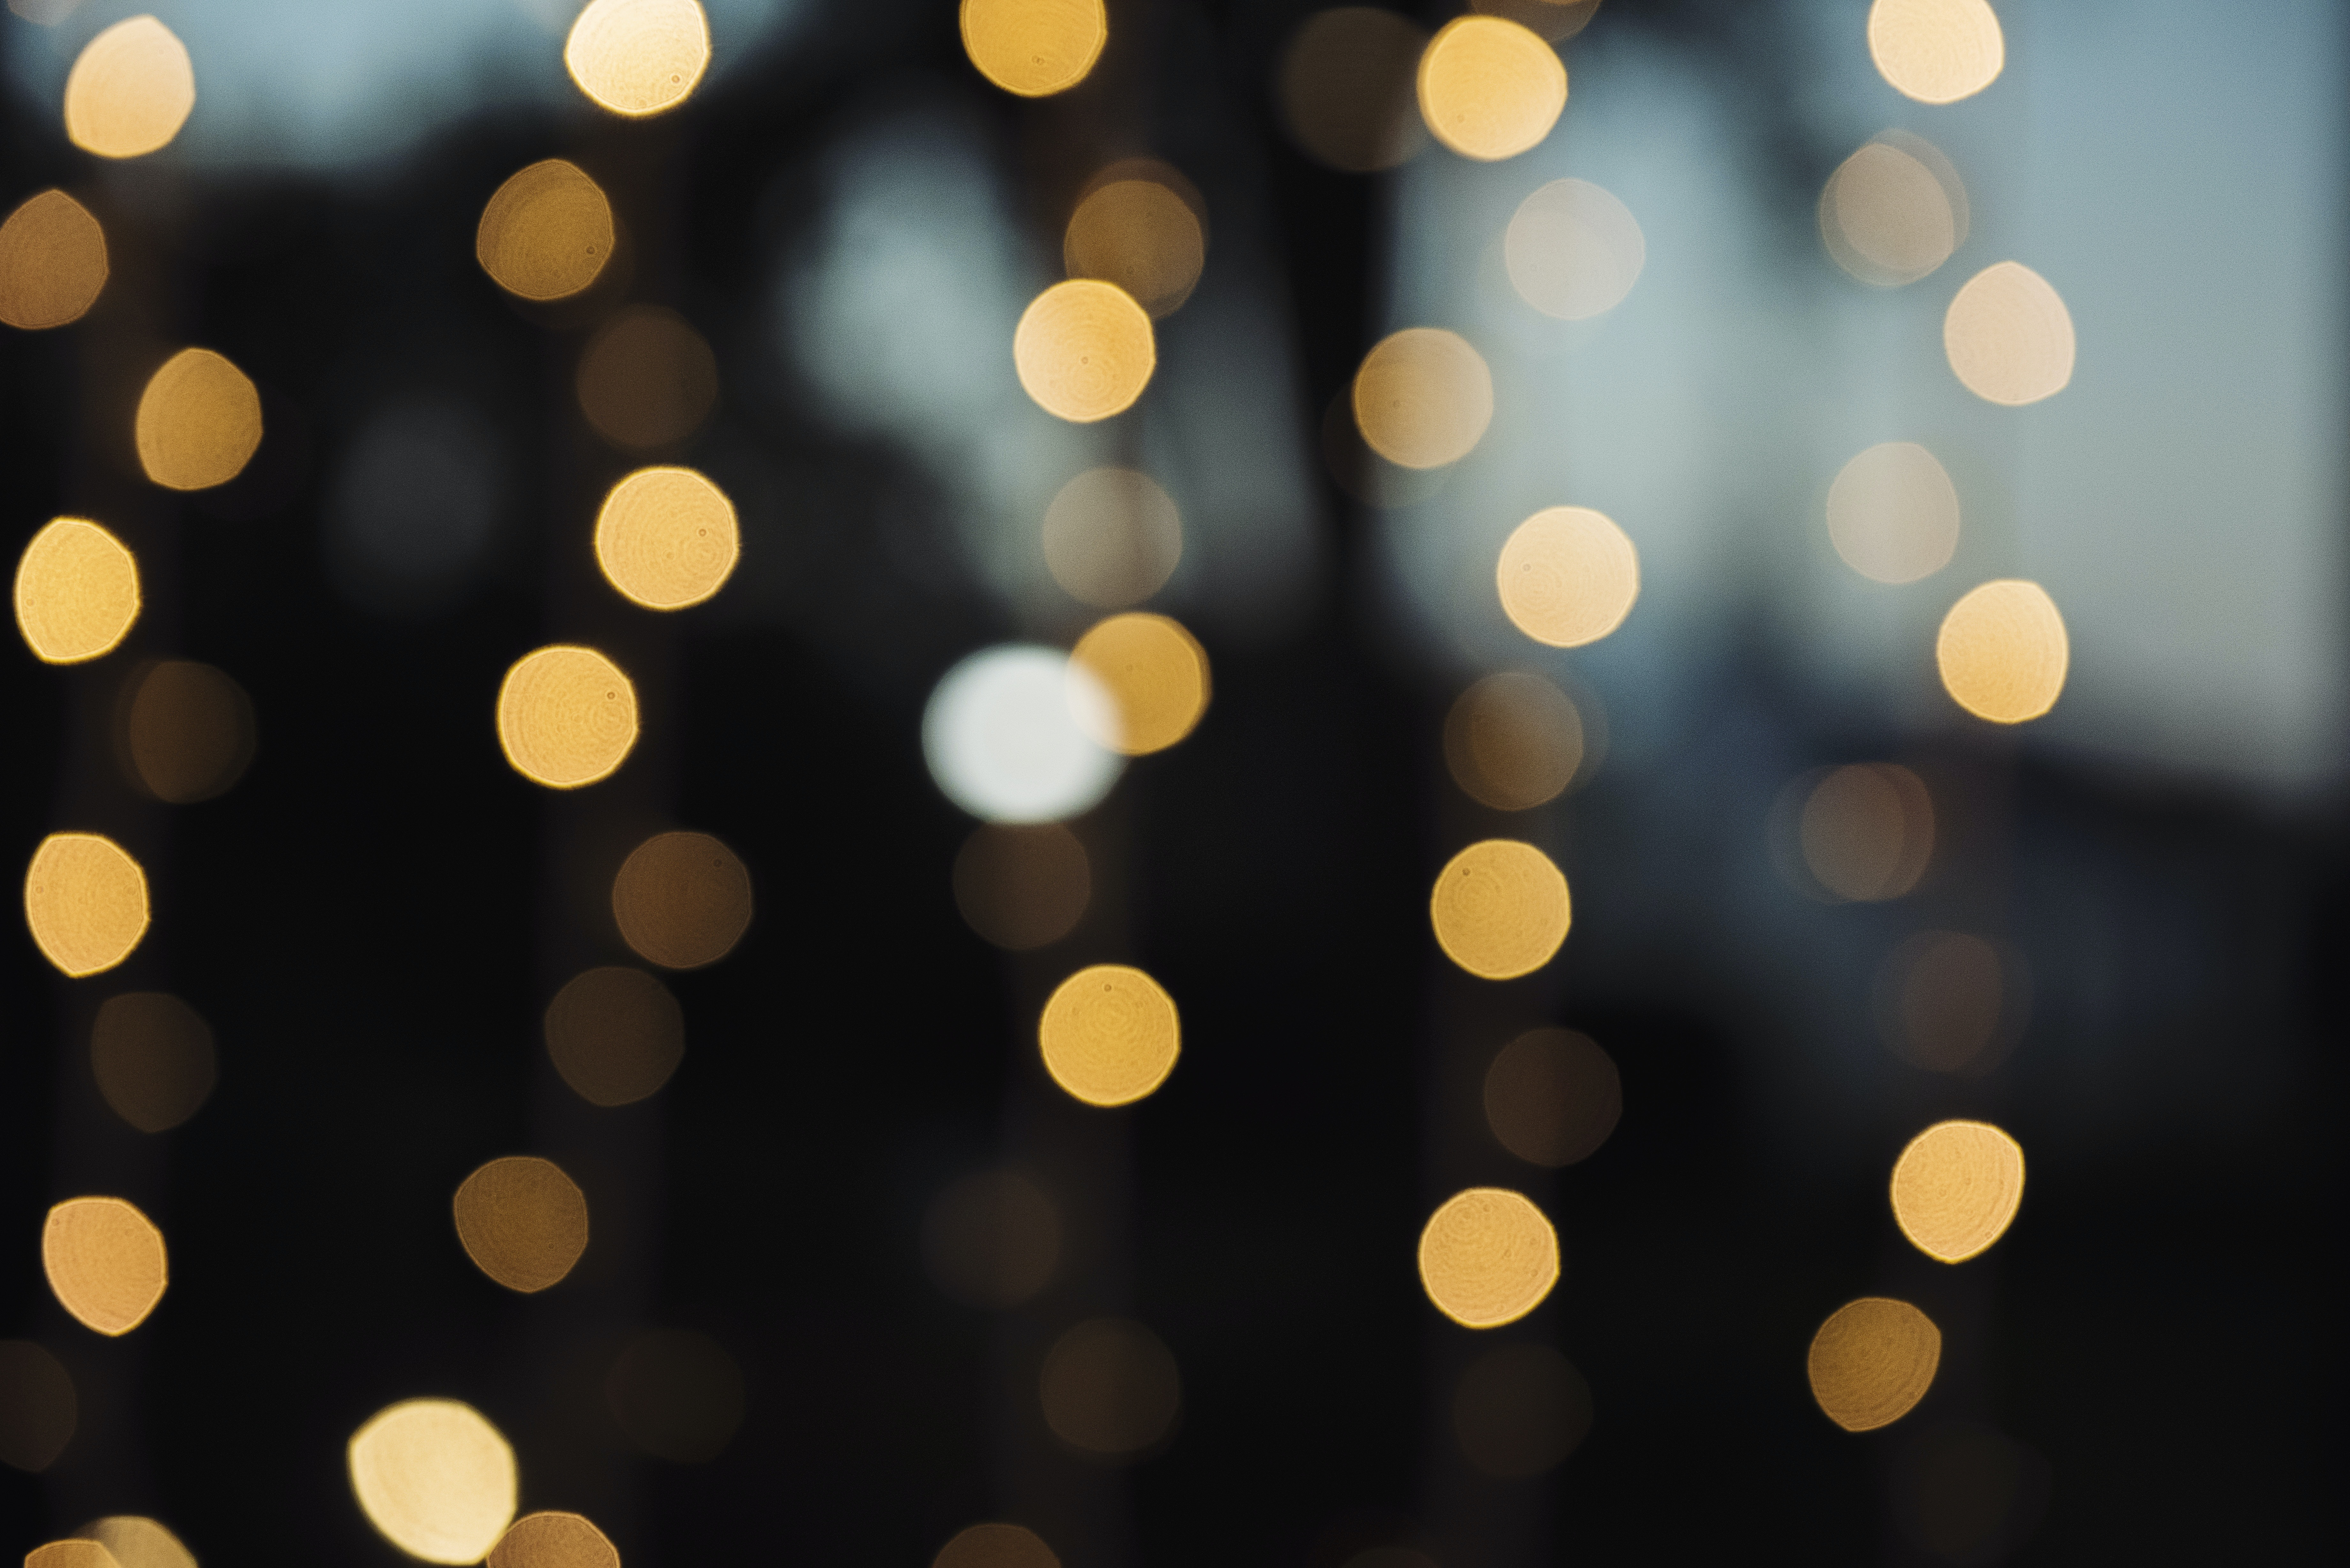 Related searches blur background lights light close,up · Bokeh Photography